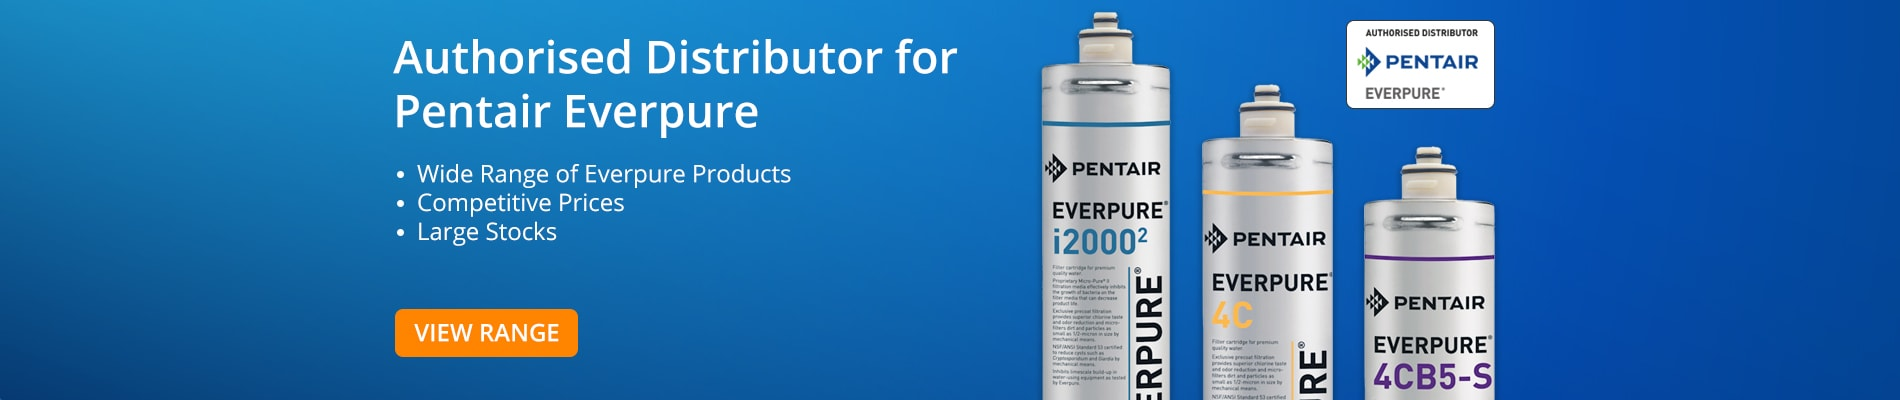 Authorised Distributor for Pentair Everpure